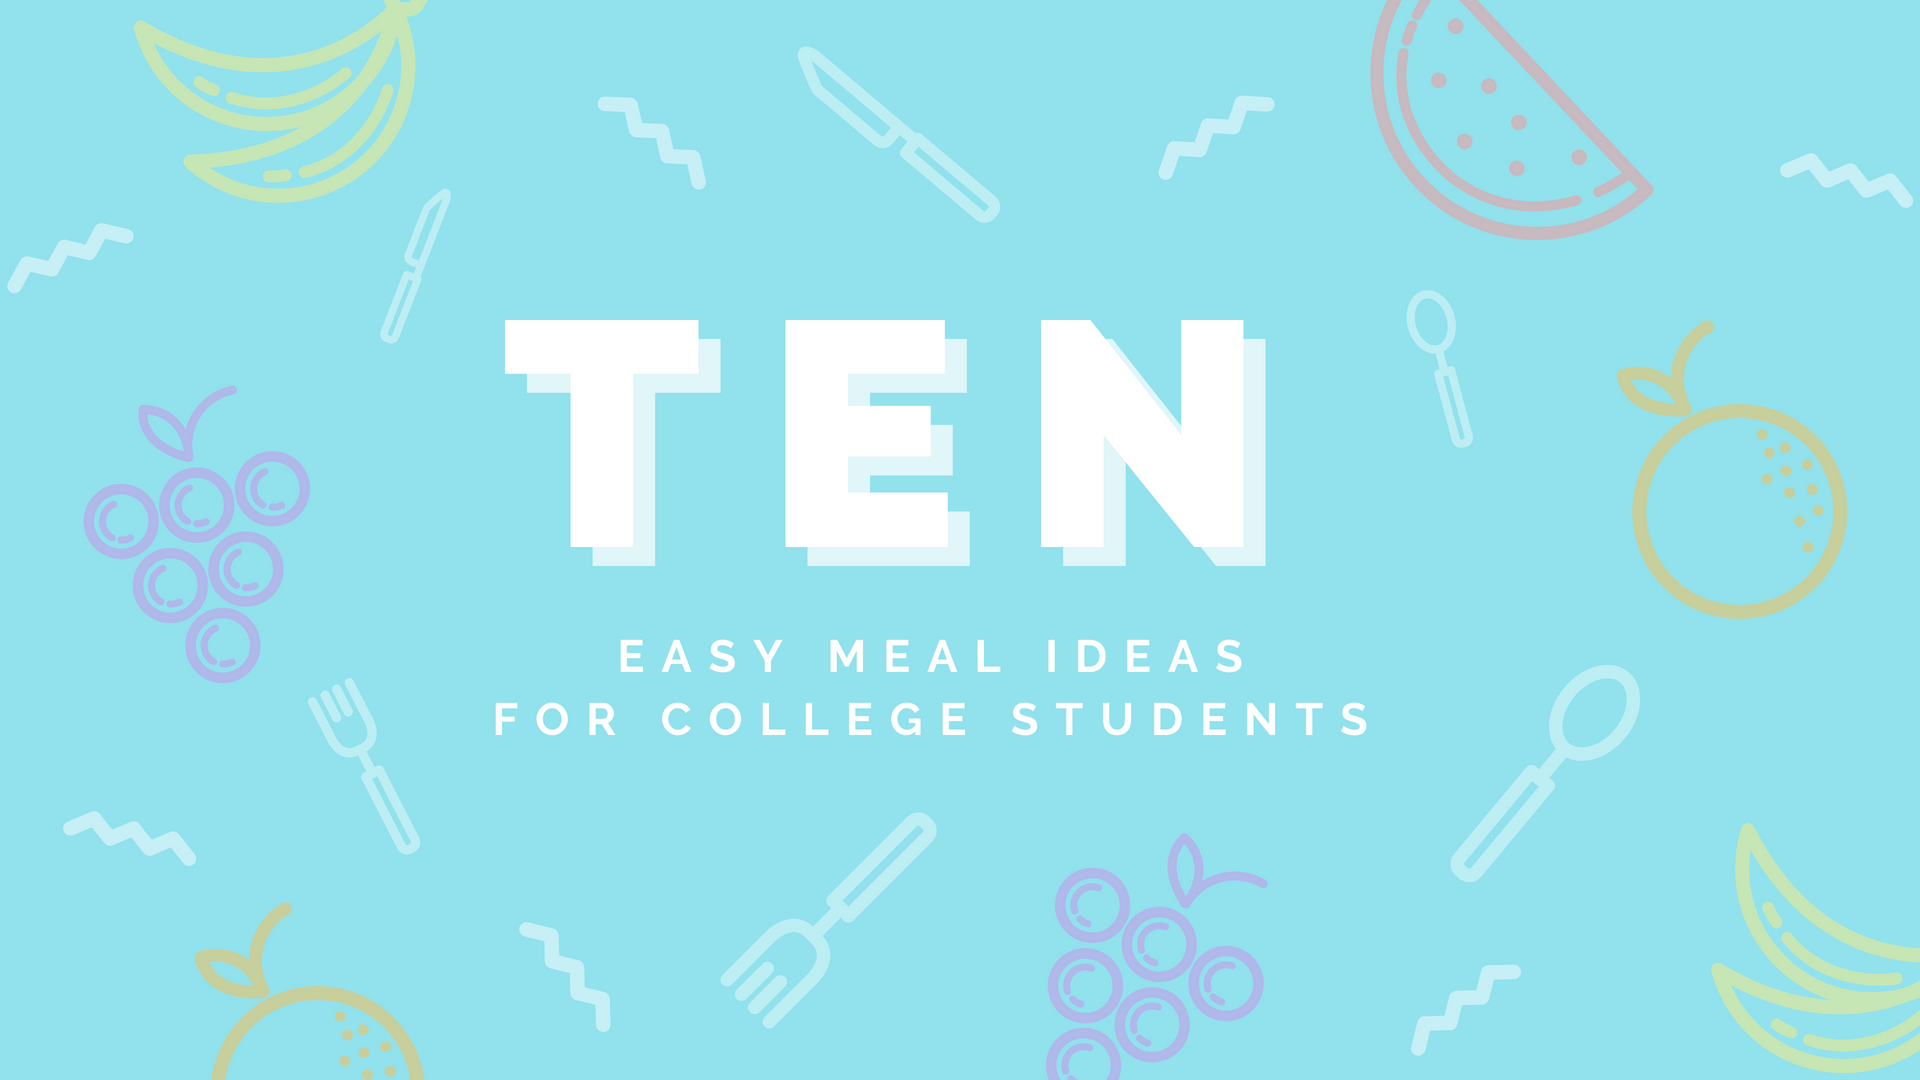 Easy Meal Ideas for College Students